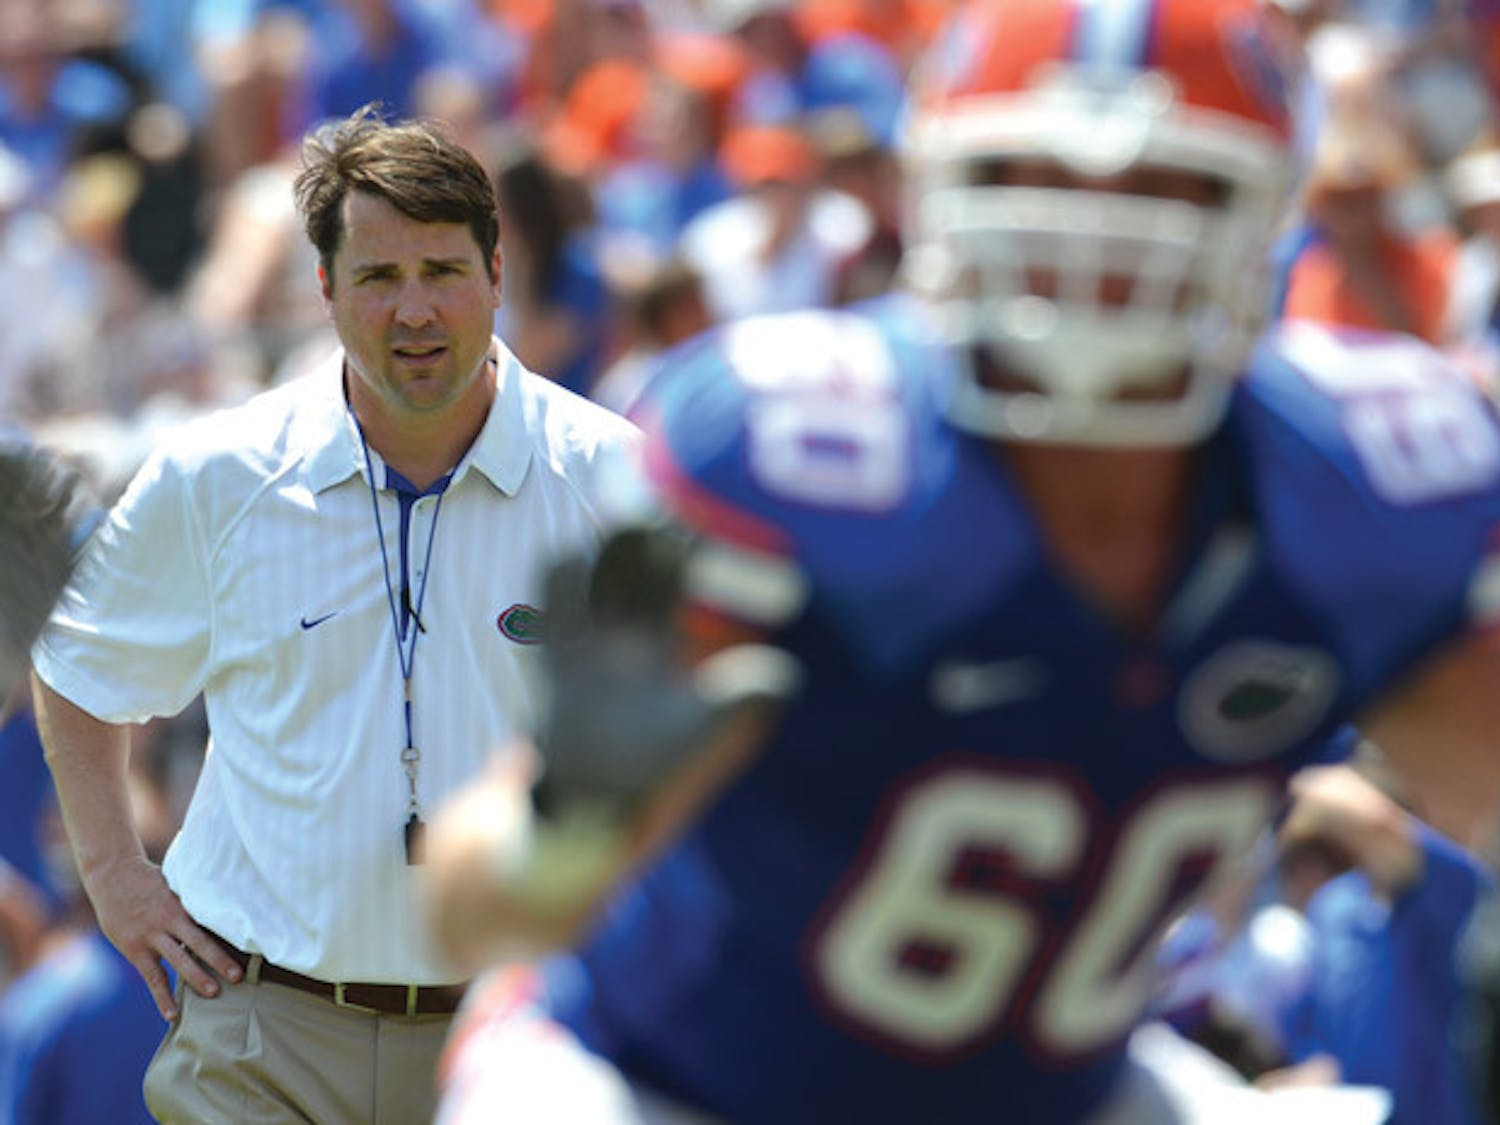 After a mediocre finish and a barrage of off-the-field issues, Florida coach Will Muschamp will try to balance promises of proper conduct with the expectations of winning immediately in his first year.